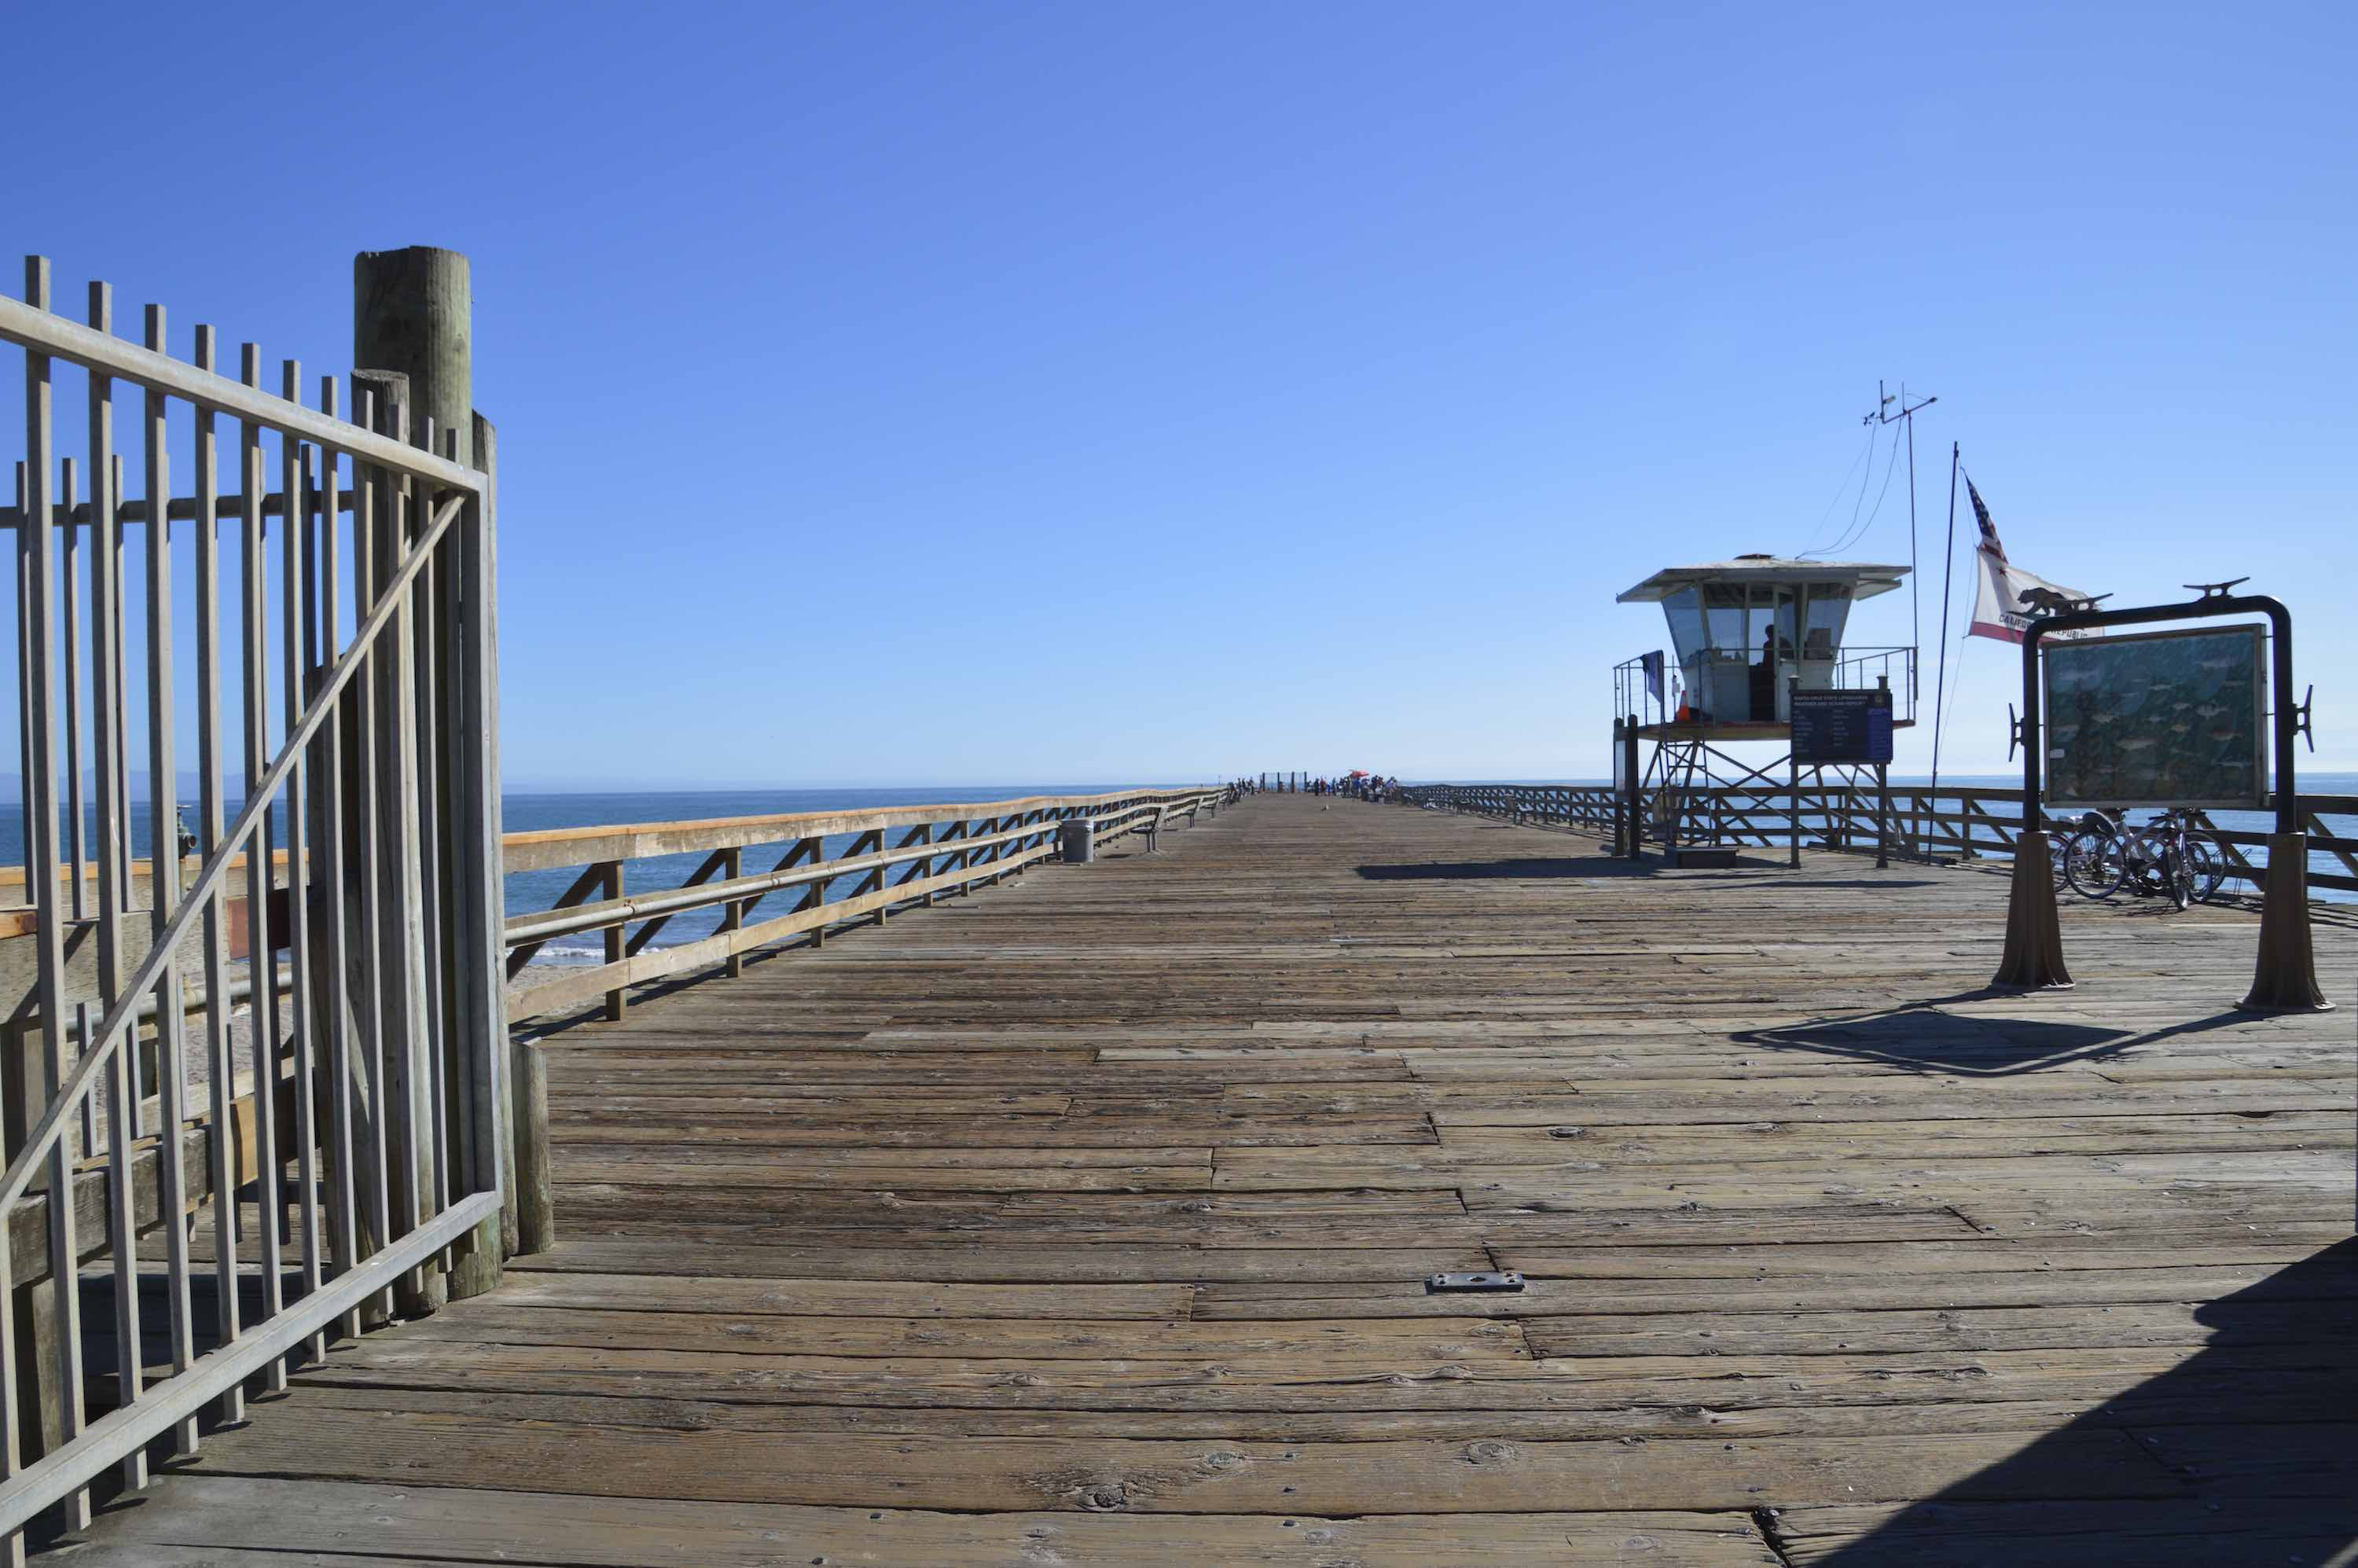 The Seacliff Beach entrance to the pier where people fish and sight-see.